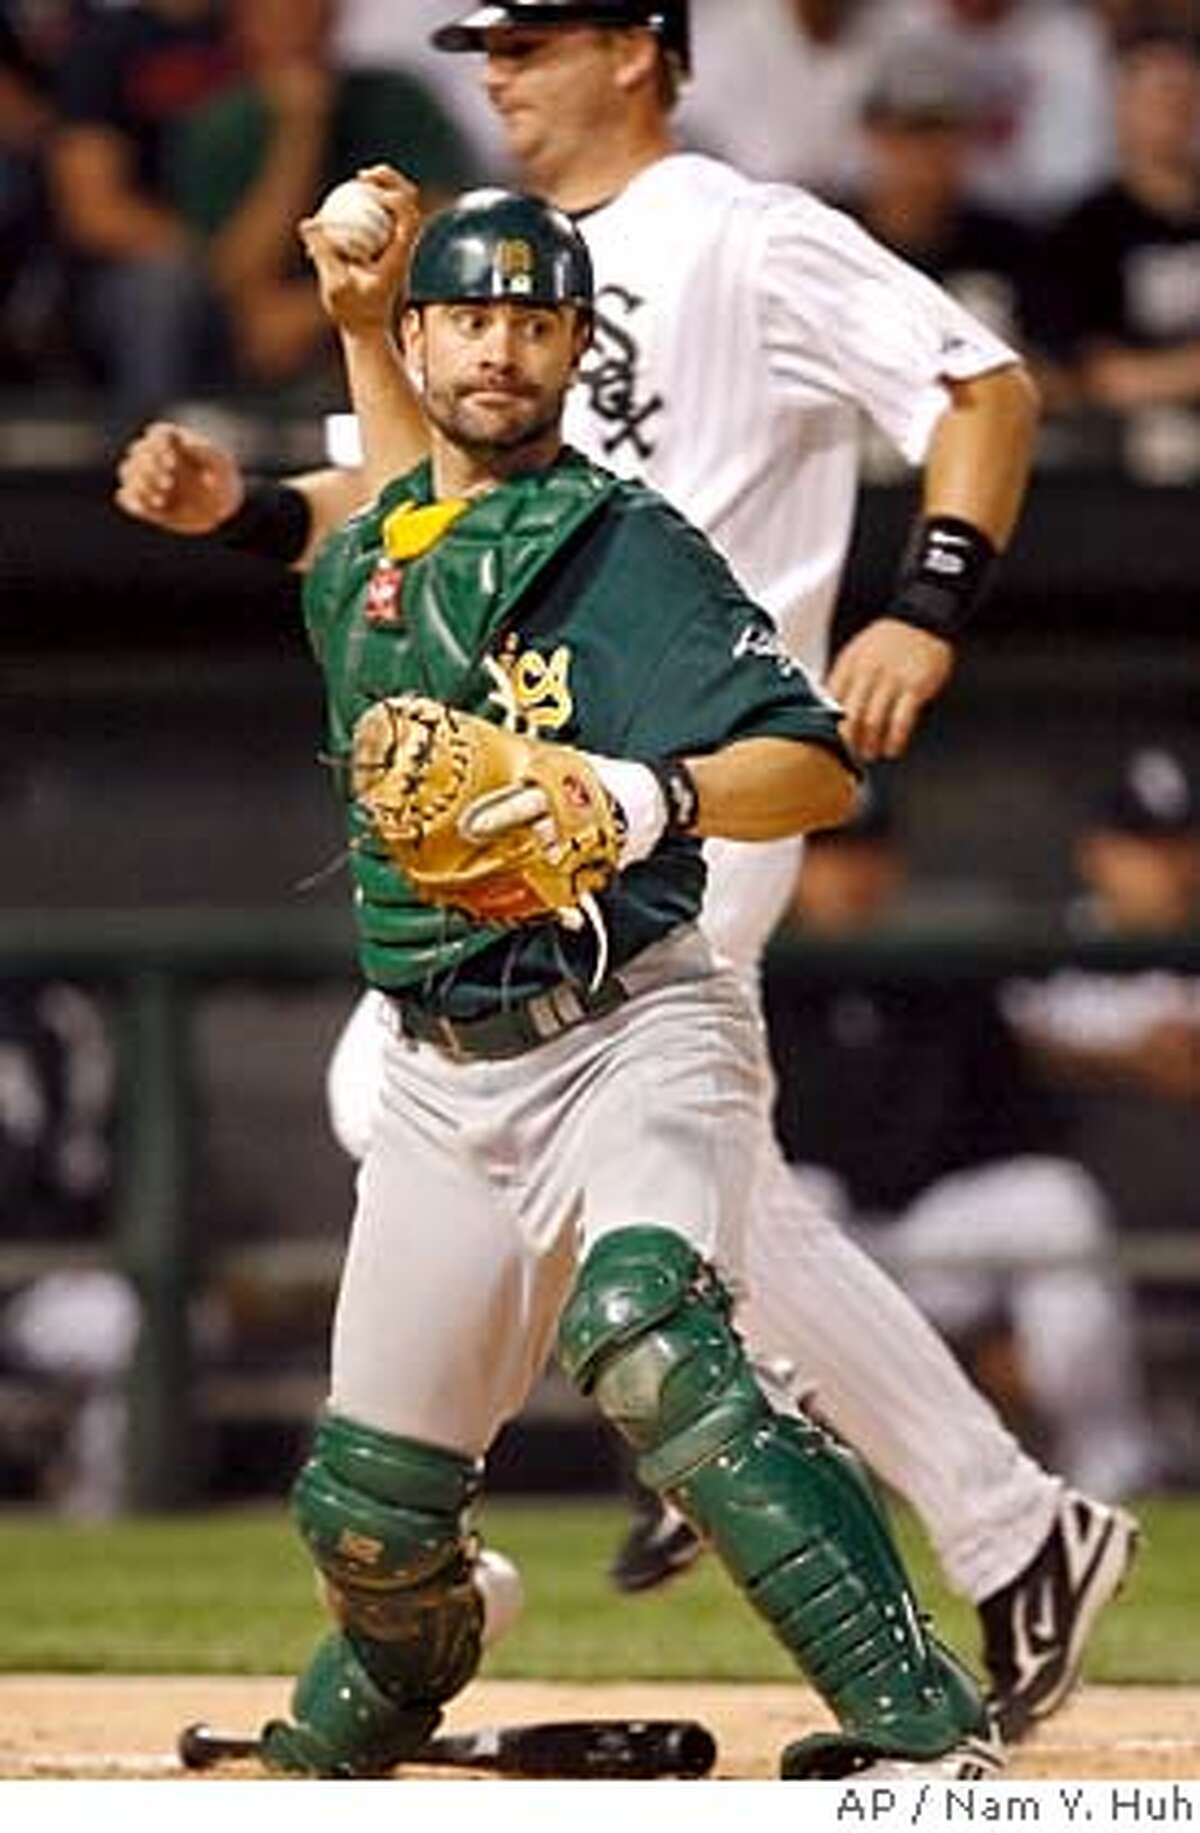 ** FILE ** Oakland Athletics catcher Jason Kendall, front, looks to throw to first after forcing out Chicago White Sox's A.J. Pierzynski at home plate in this file photo from a baseball game, Wednesday, May 23, 2007, in Chicago. Kendall is back in the National League after being acquired by the Chicago Cubs Monday, July 16, 2007. The Oakland Athletics sent the veteran catcher and cash to the Cubs for receiver Rob Bowen and minor league pitcher Jerry Blevins. (AP Photo/Nam Y. Huh)